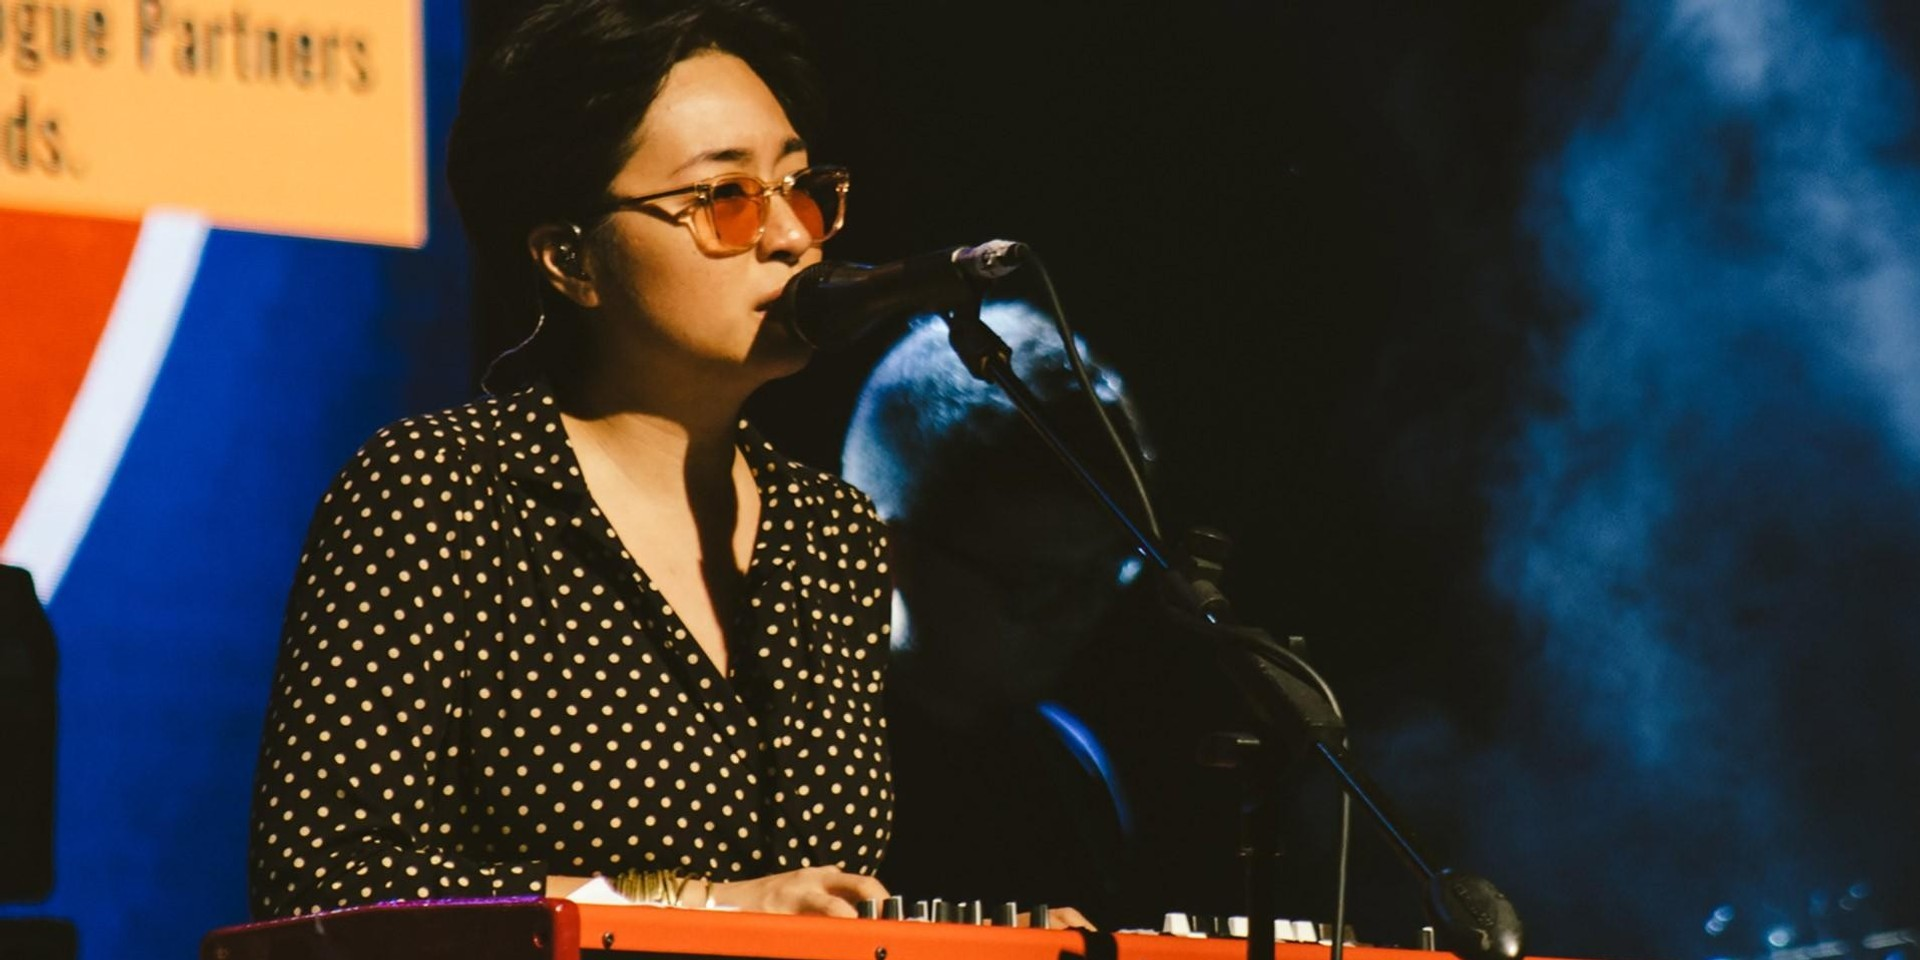 Armi Millare talks collaborating with D'Sound on 'Lykkelig' and coming up with the happiest lyric she has ever written